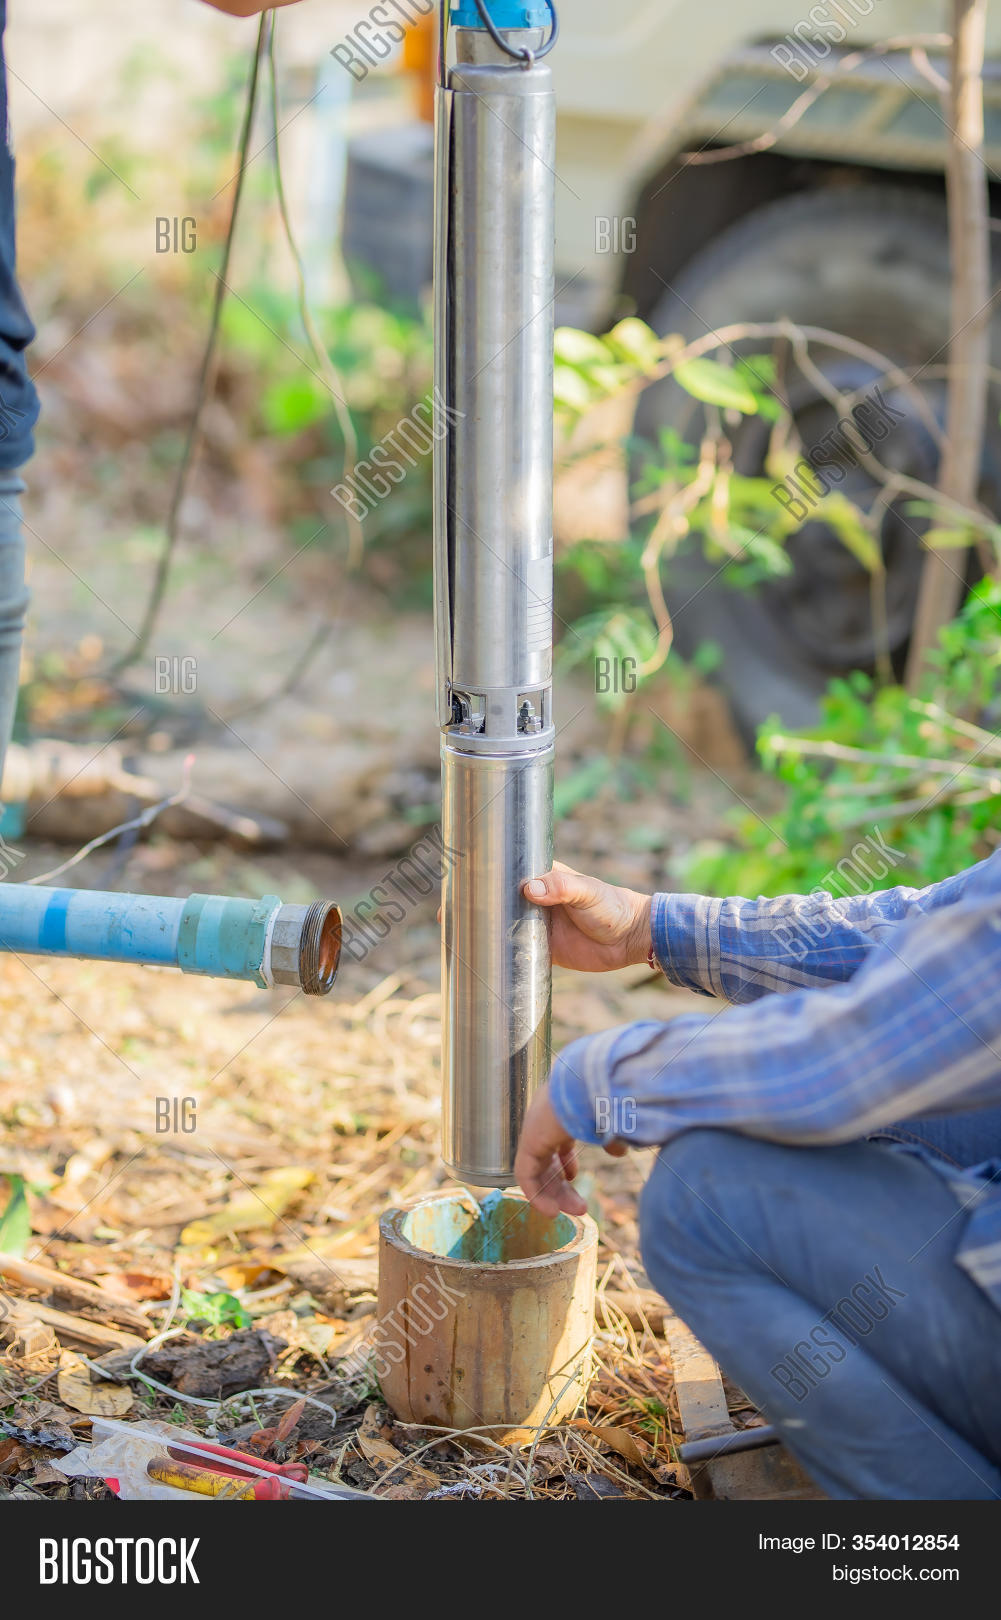 Submersible Pumps Image Photo Free Trial Bigstock